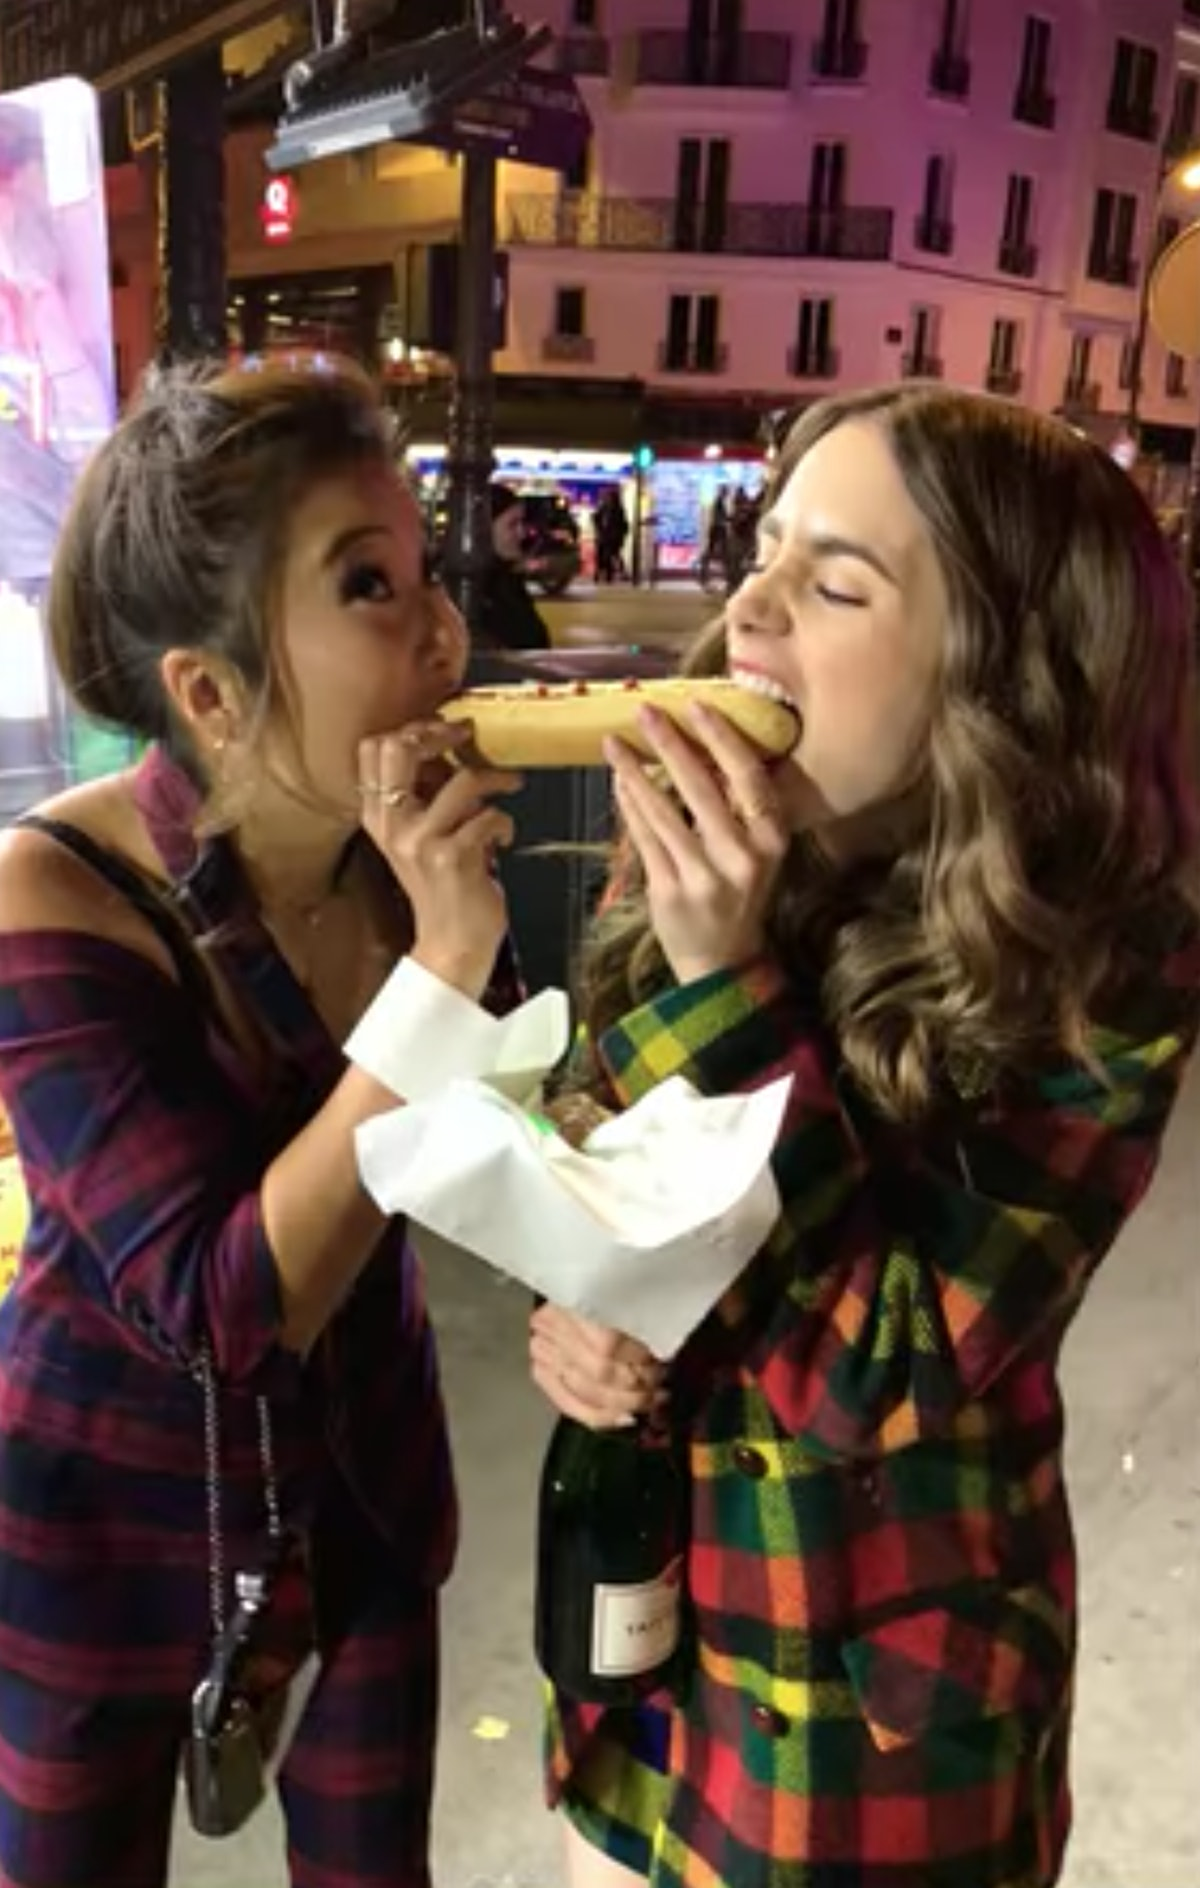 Emily (Lily Collins) and Mindy (Ashley Park) bite out of a hot dog at the same time like in 'Lady an...